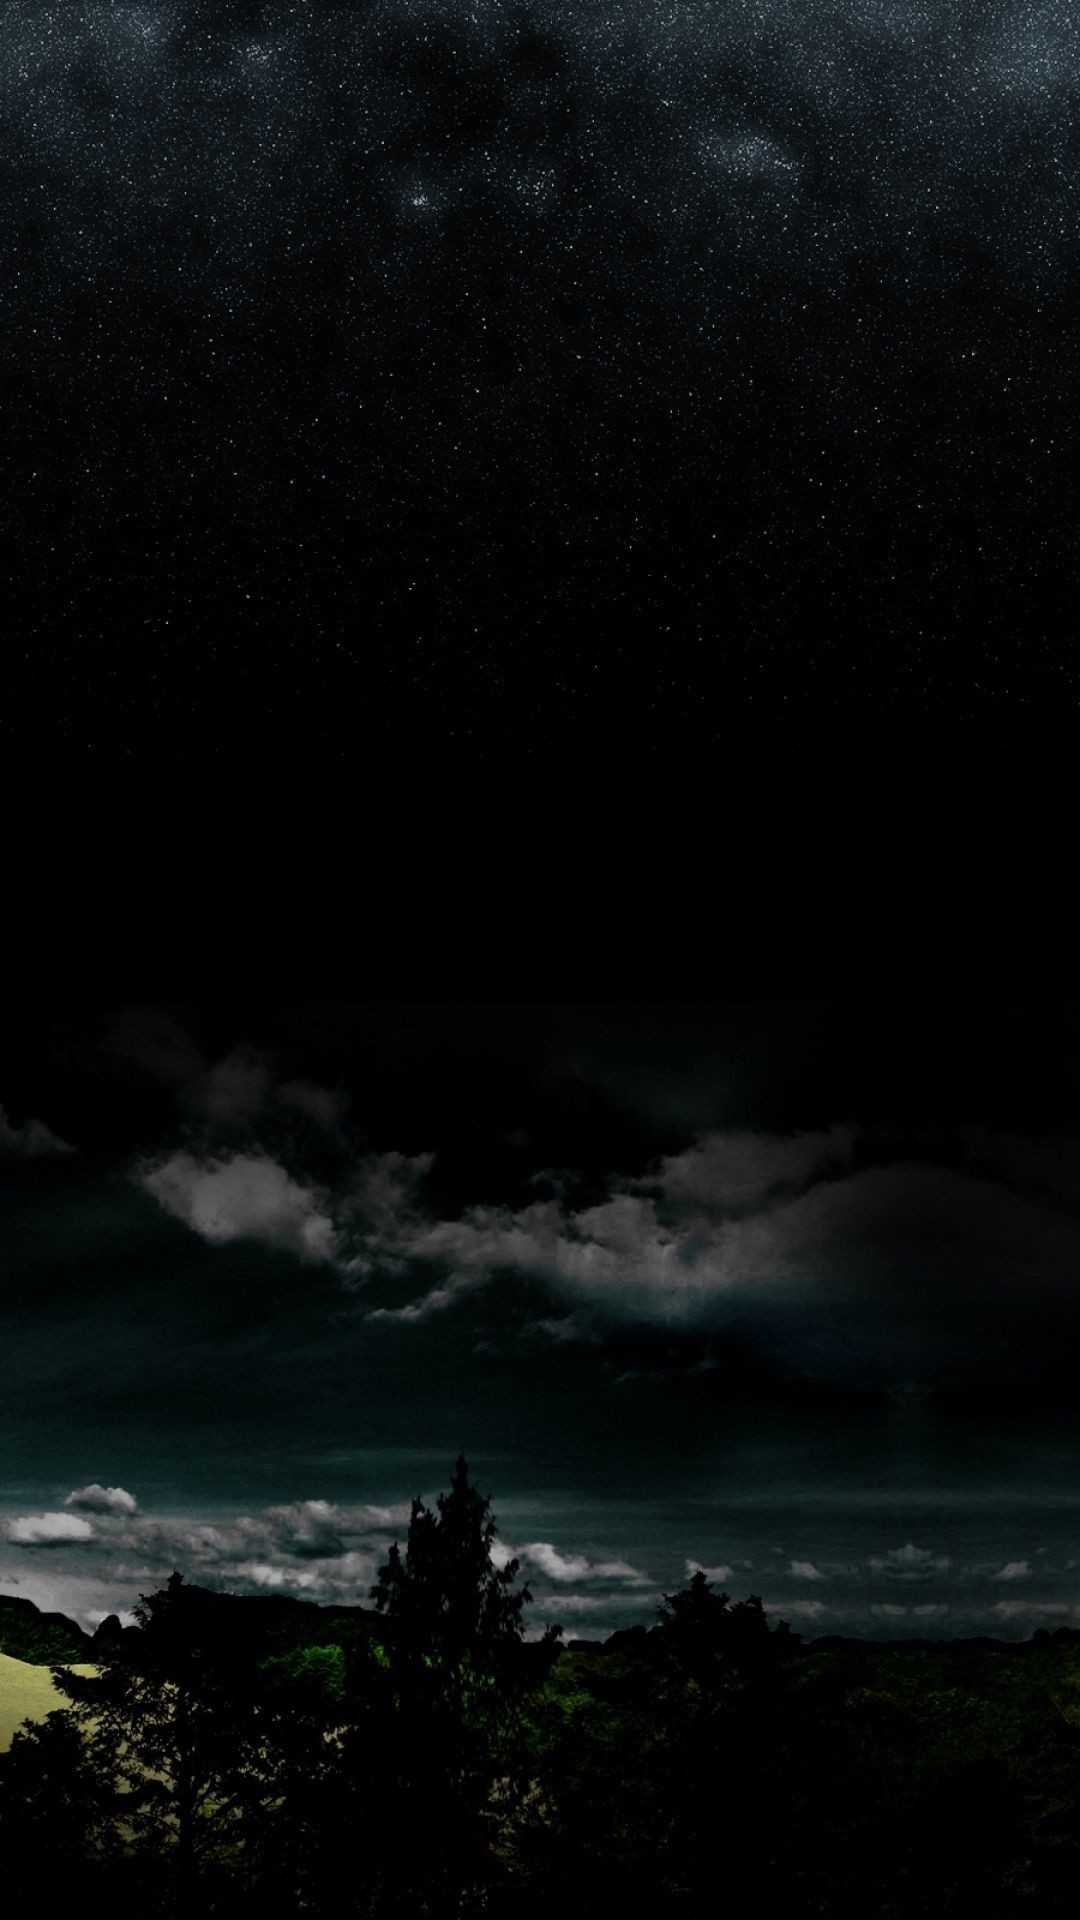 Dark iPhone wallpaper